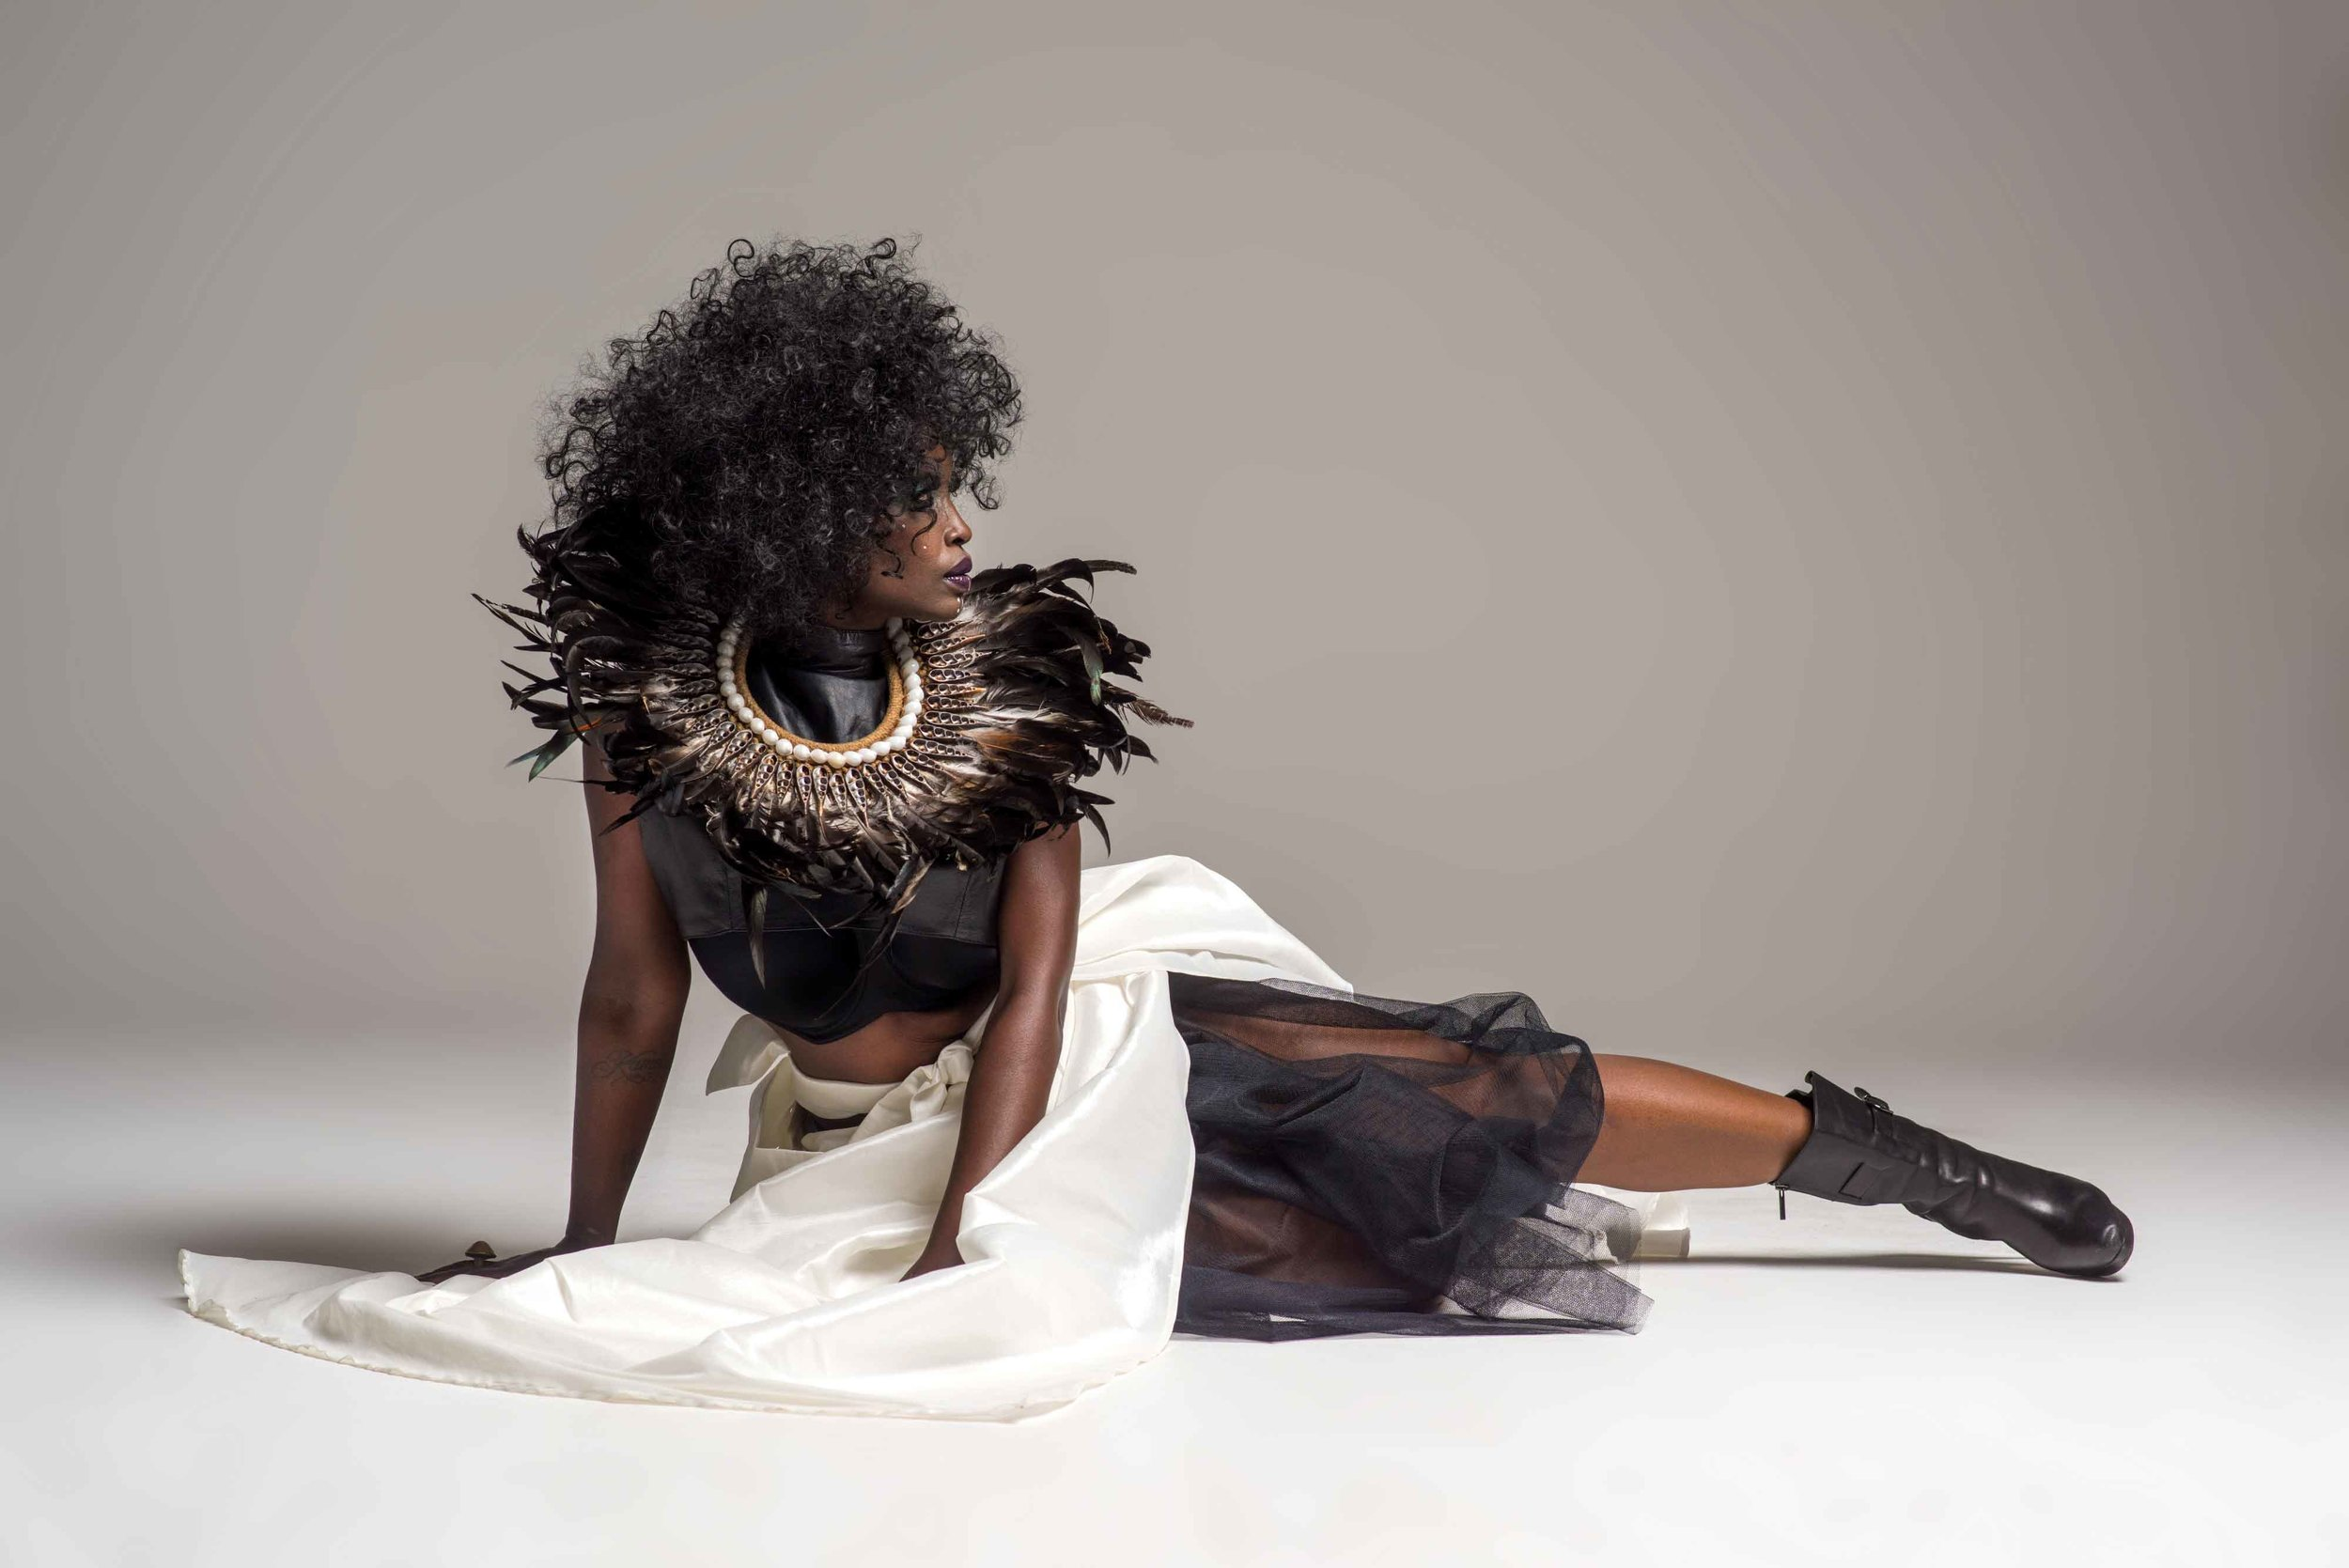 Photography: Art Thomas MUA: Lisa Rathglen Stylist: Claude Monthe